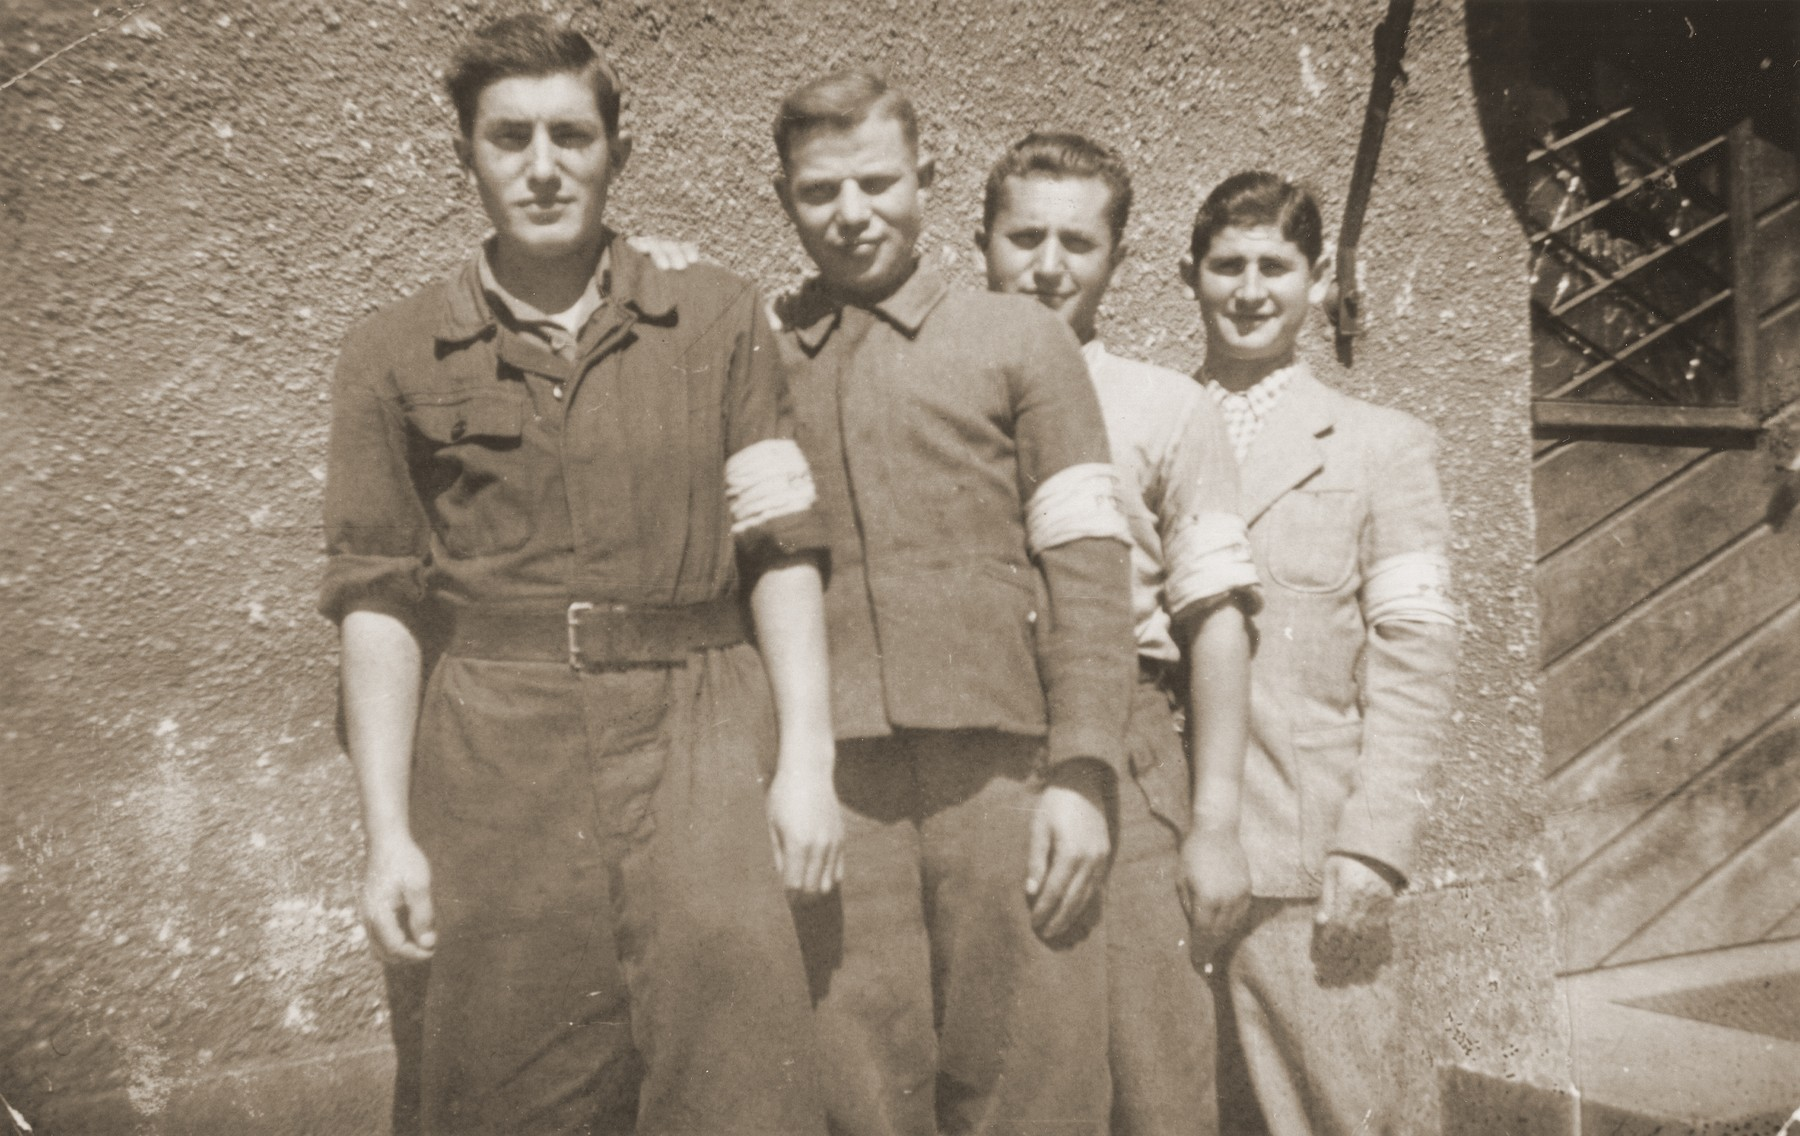 Four Jewish policemen pose wearing armbands in the Landsberg displaced persons camp.    Szmuel Silbiger is pictured on the far left.